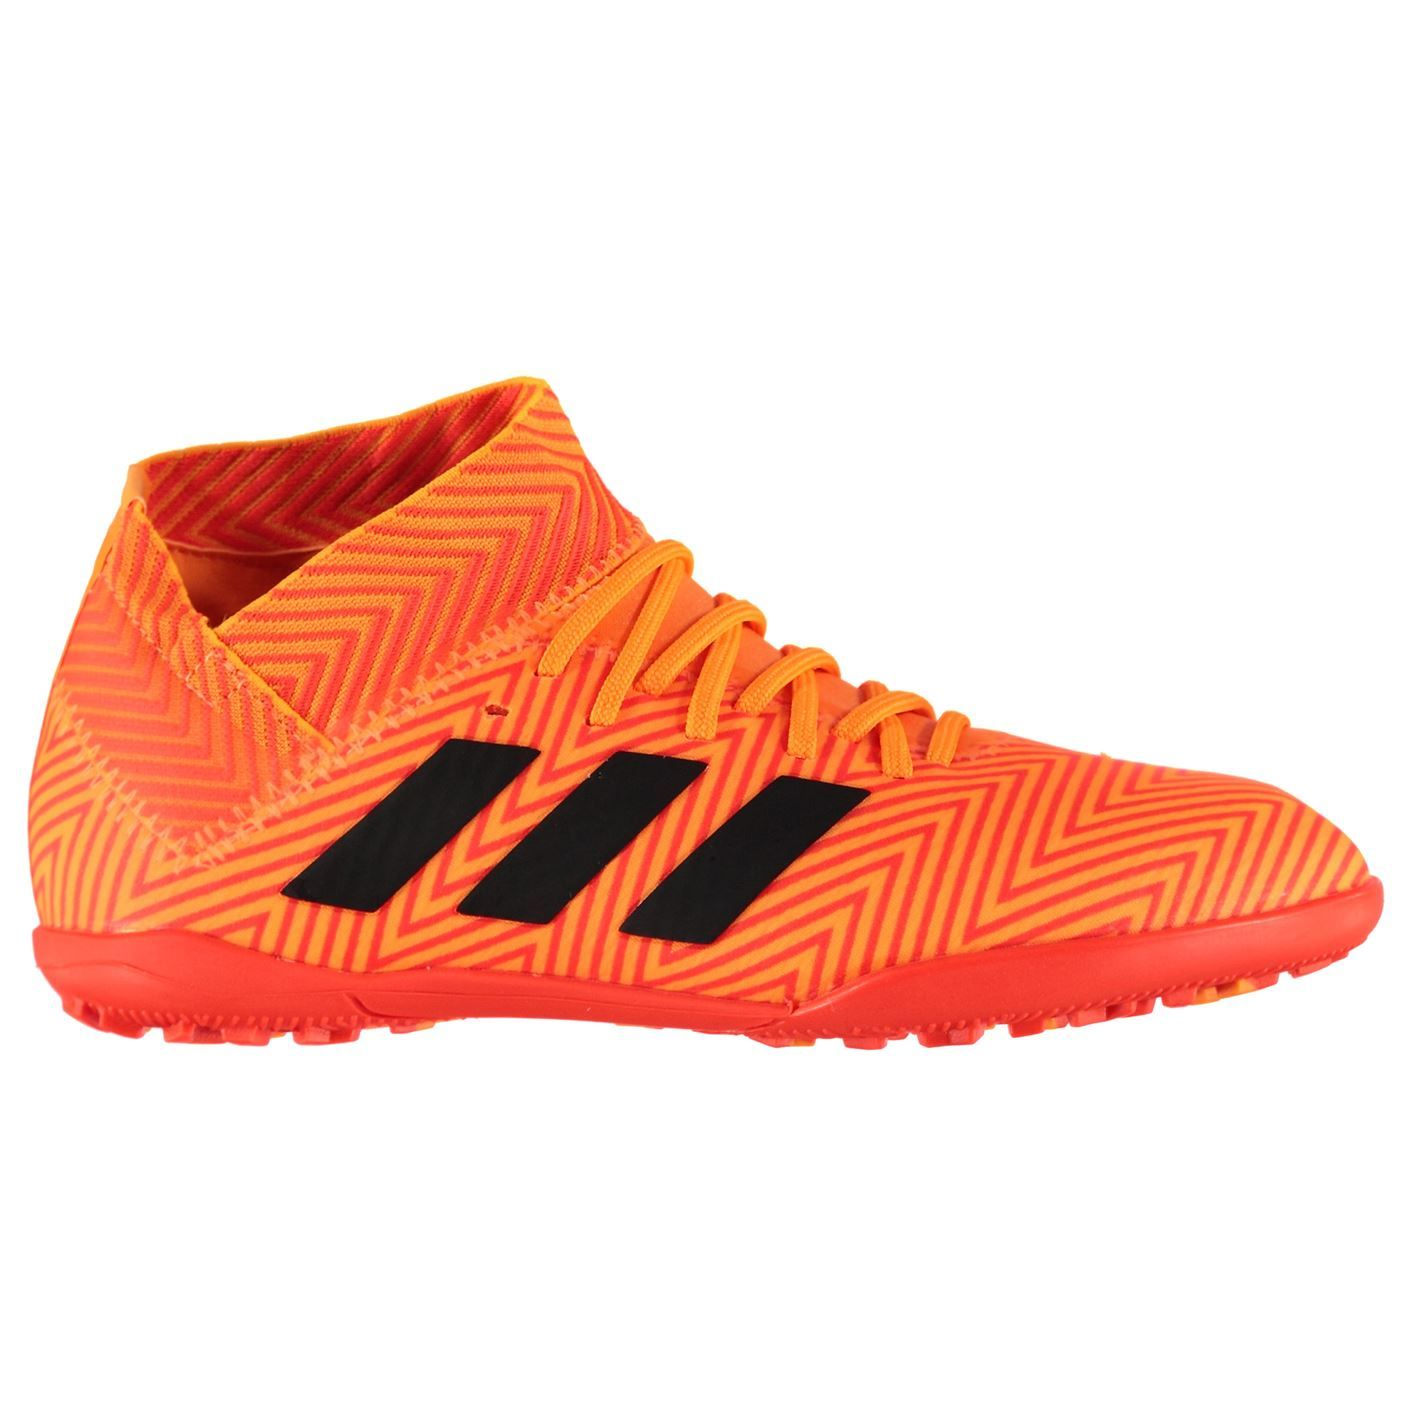 ac4c342914d52a adidas Nemeziz Tango 18.3 Astro Football Trainers Childs Orange Soccer Shoes